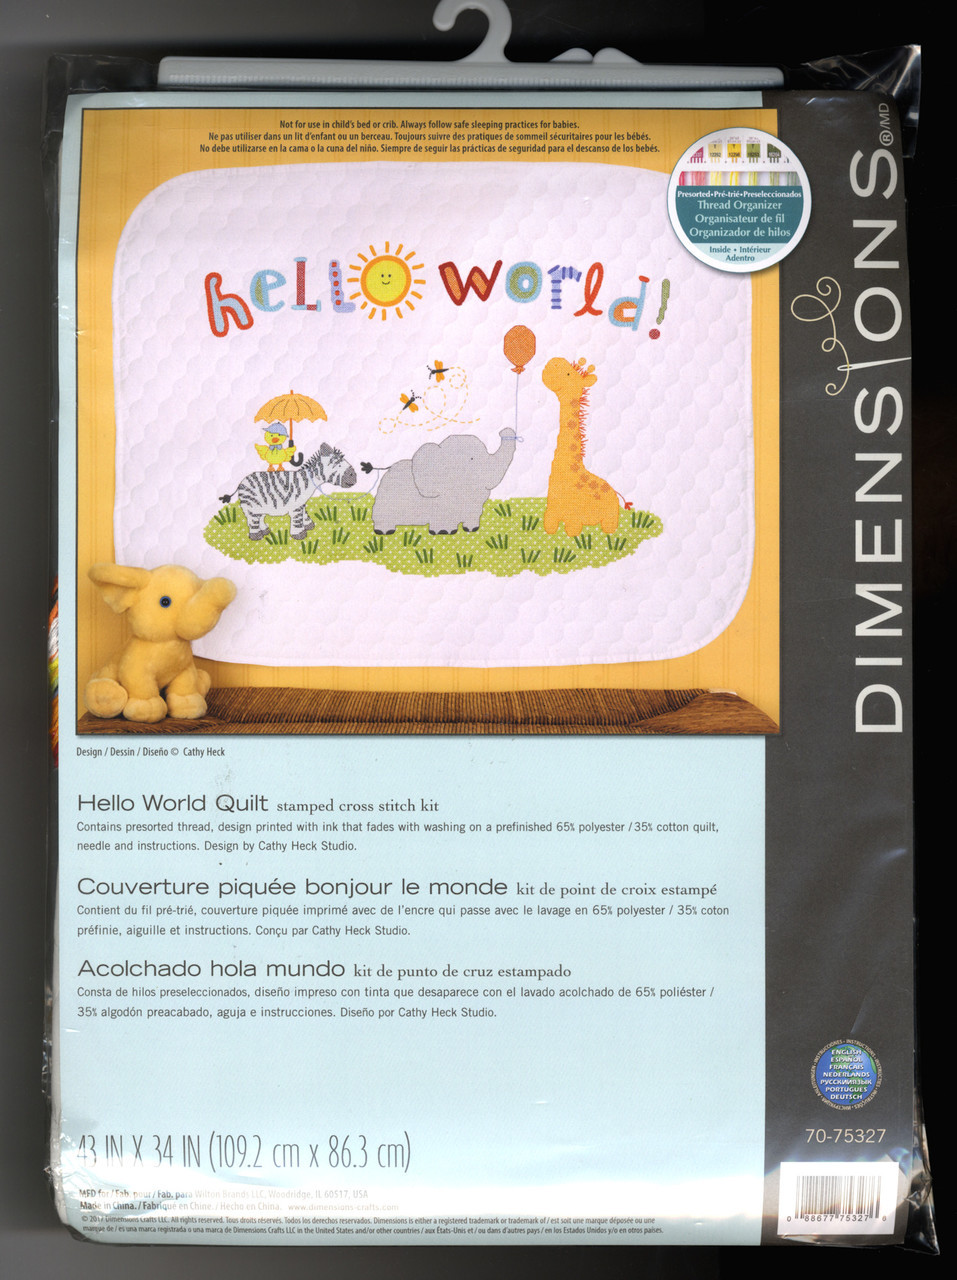 Dimensions - Hello World! Quilt